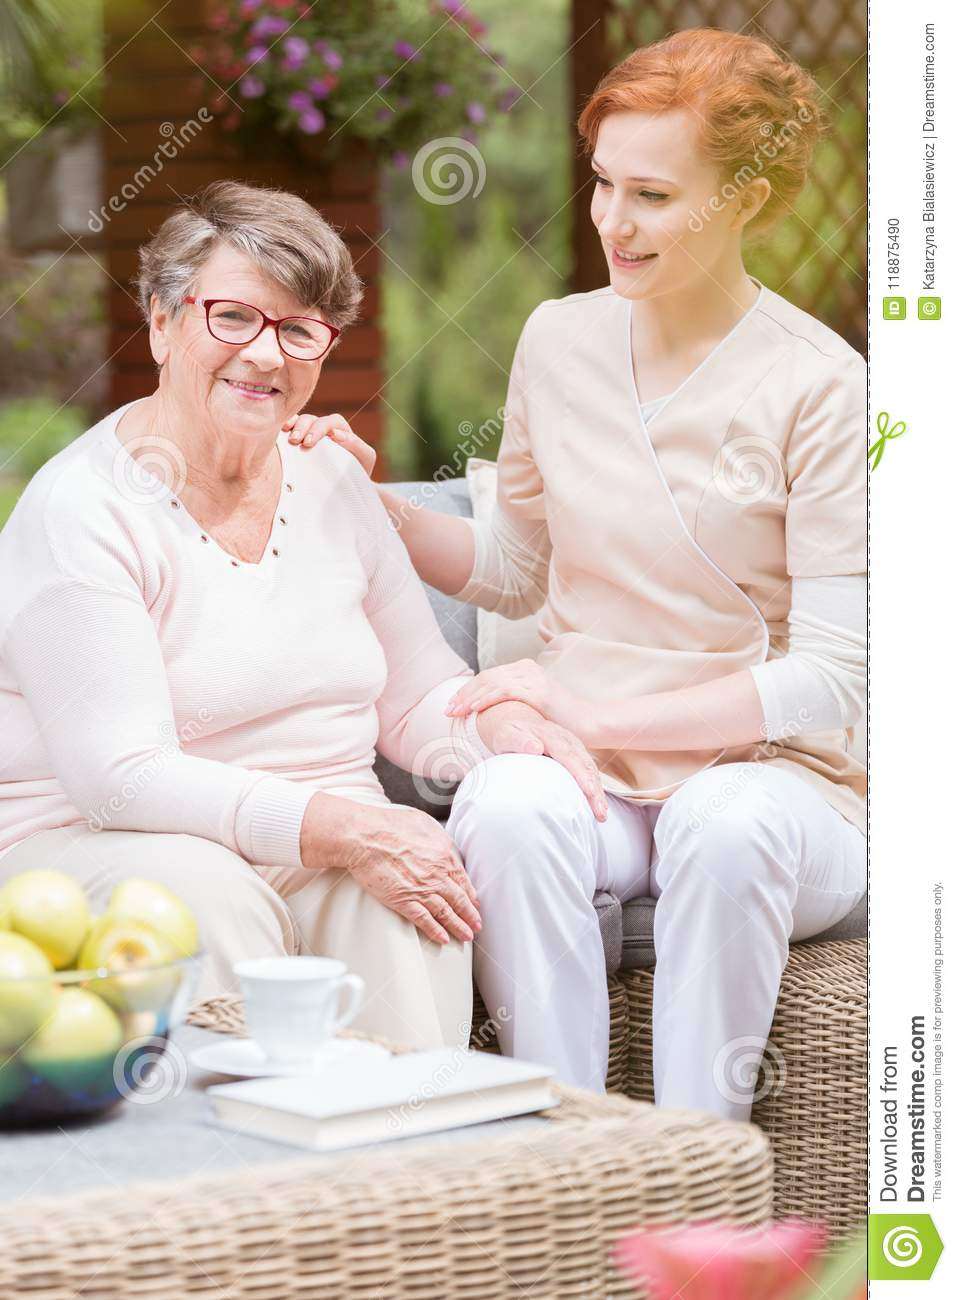 Tender professional caregiver in uniform putting her hand on a s